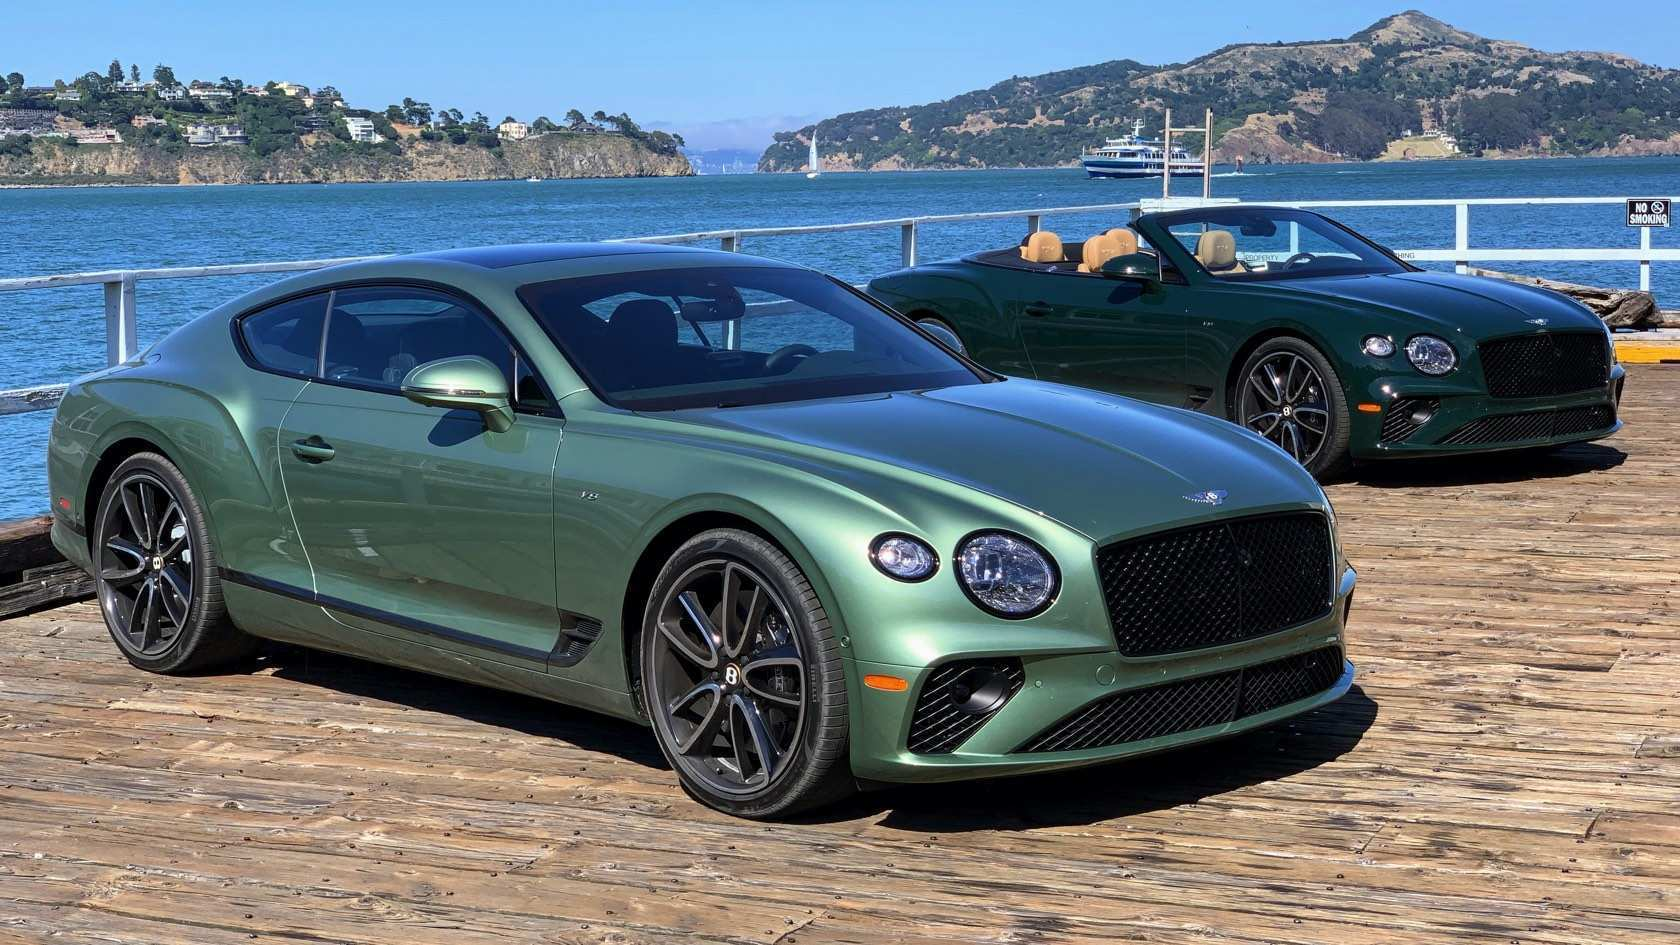 98 A 2020 Bentley Gtc Review